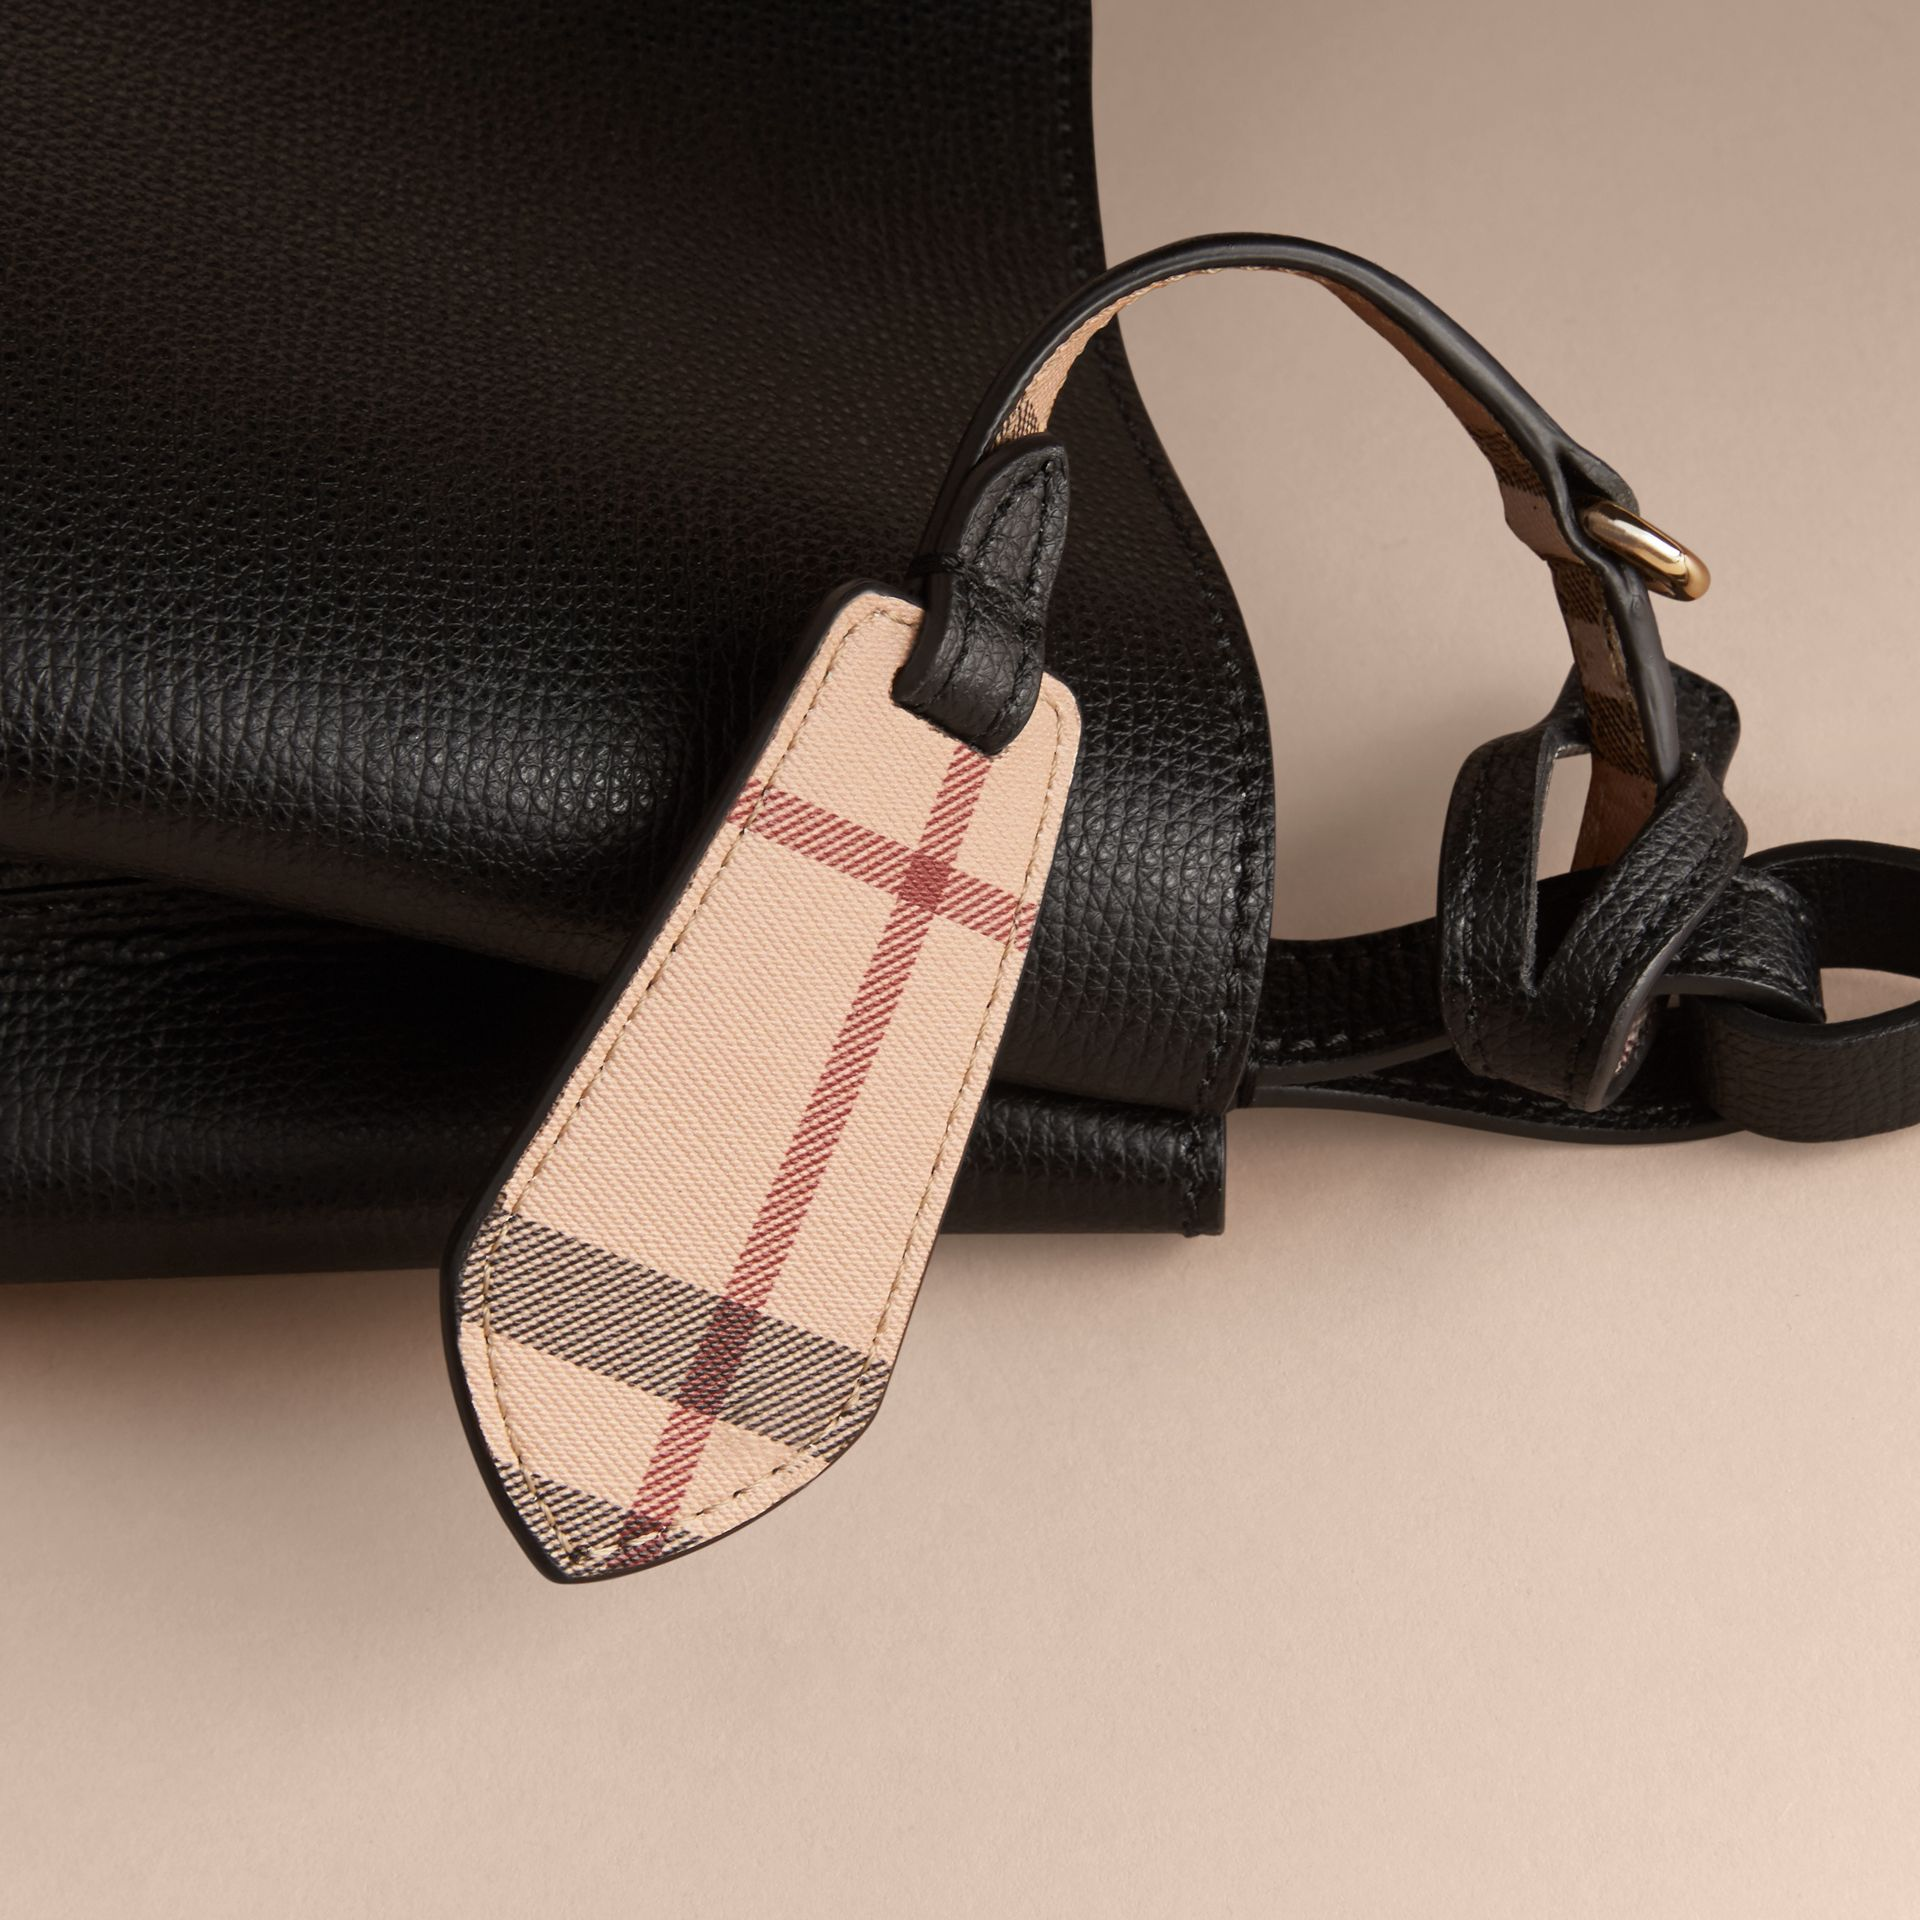 Leather and Haymarket Check Crossbody Bucket Bag in Black - Women | Burberry Australia - gallery image 6